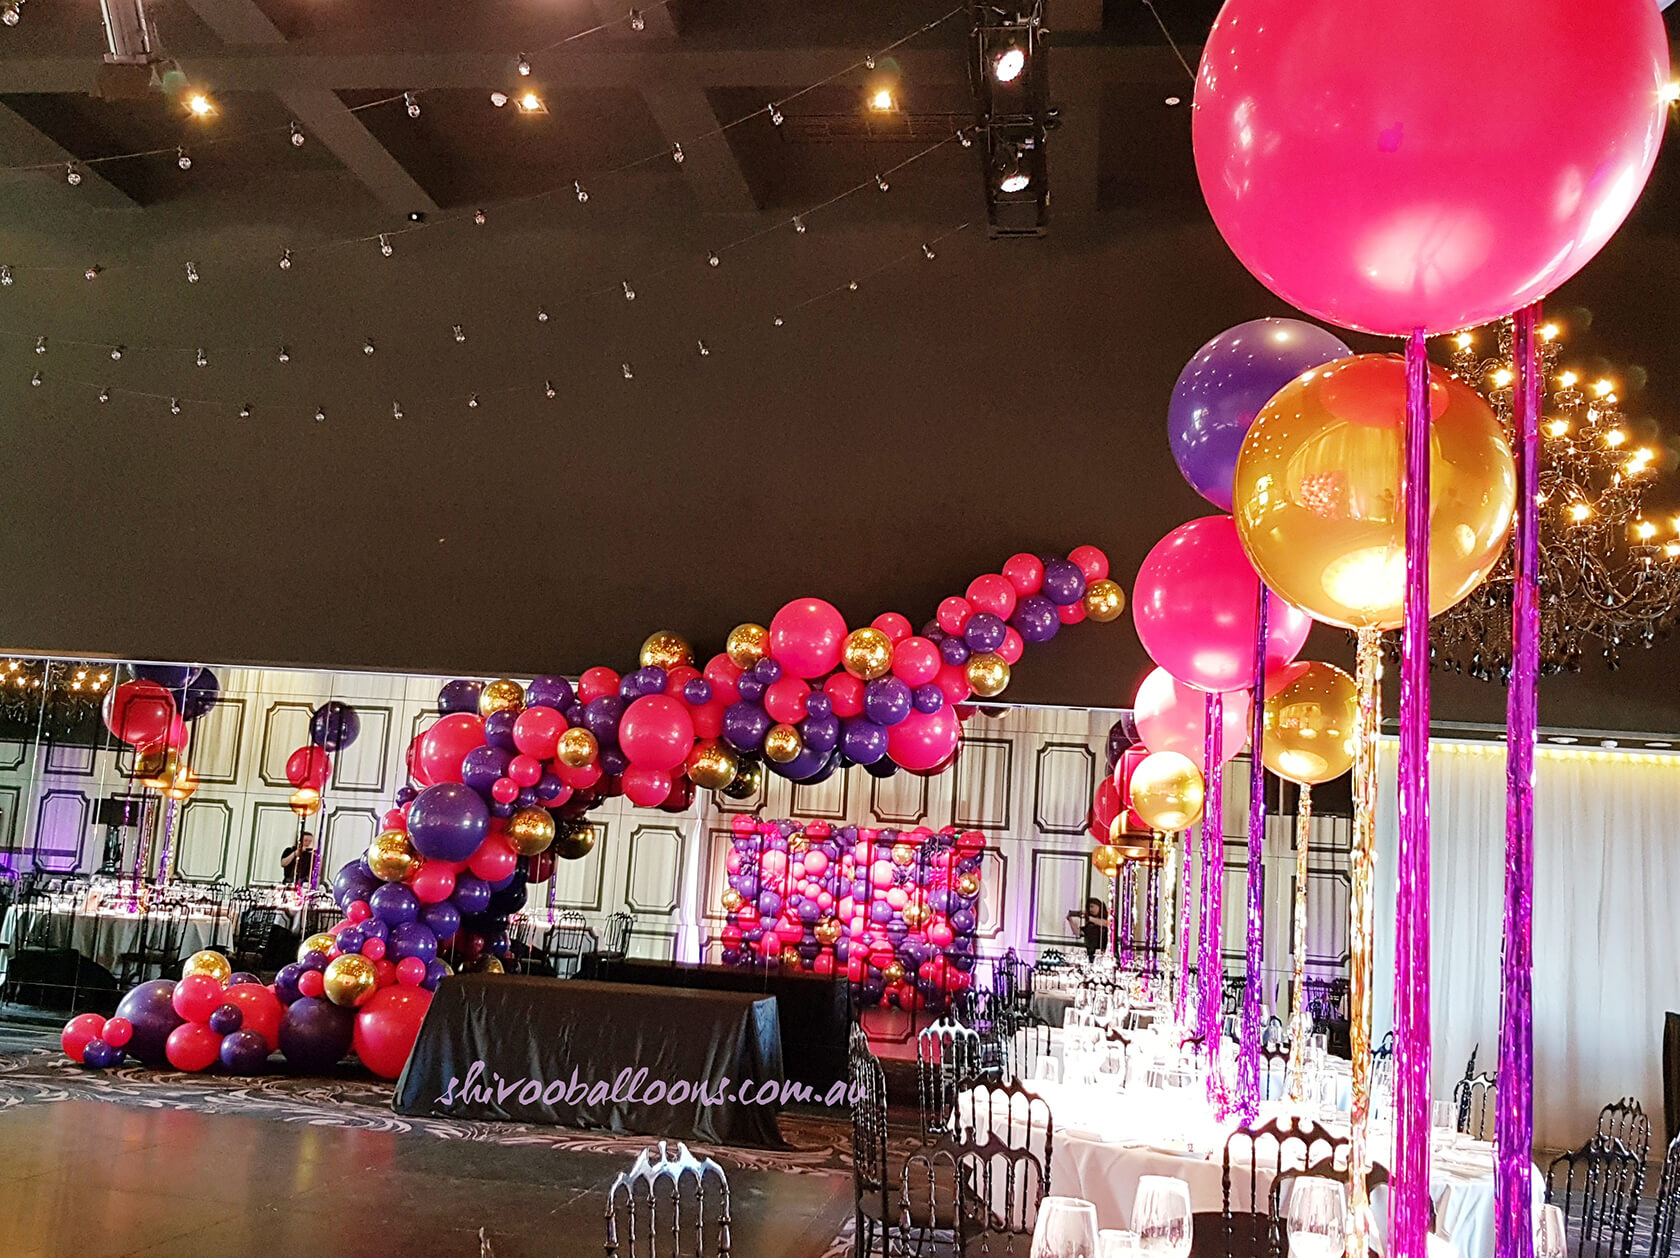 Party pink purple and gold balloons - see our events - Birthday Parties decor - shivoo balloons and decor specialists in coburg north